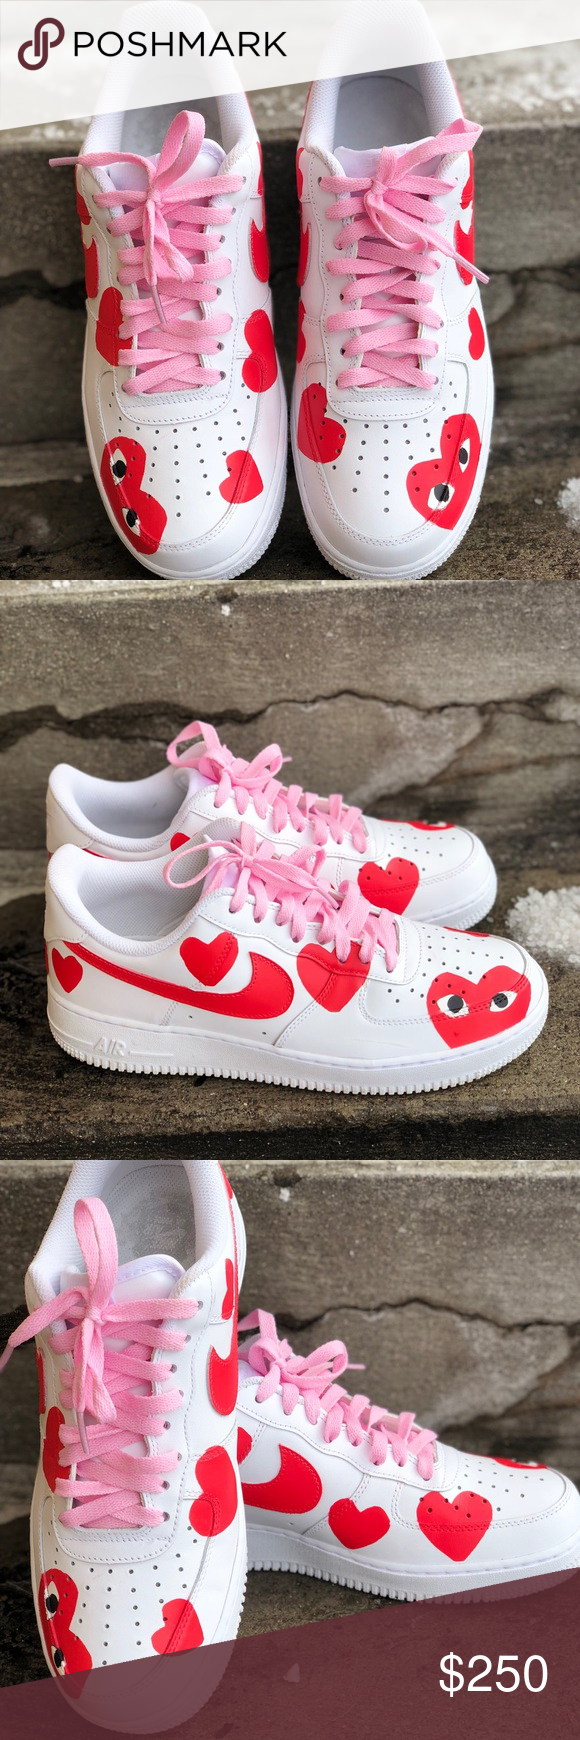 Valentine S Day Custom Air Force Ones Nwt In 2018 My Posh Picks